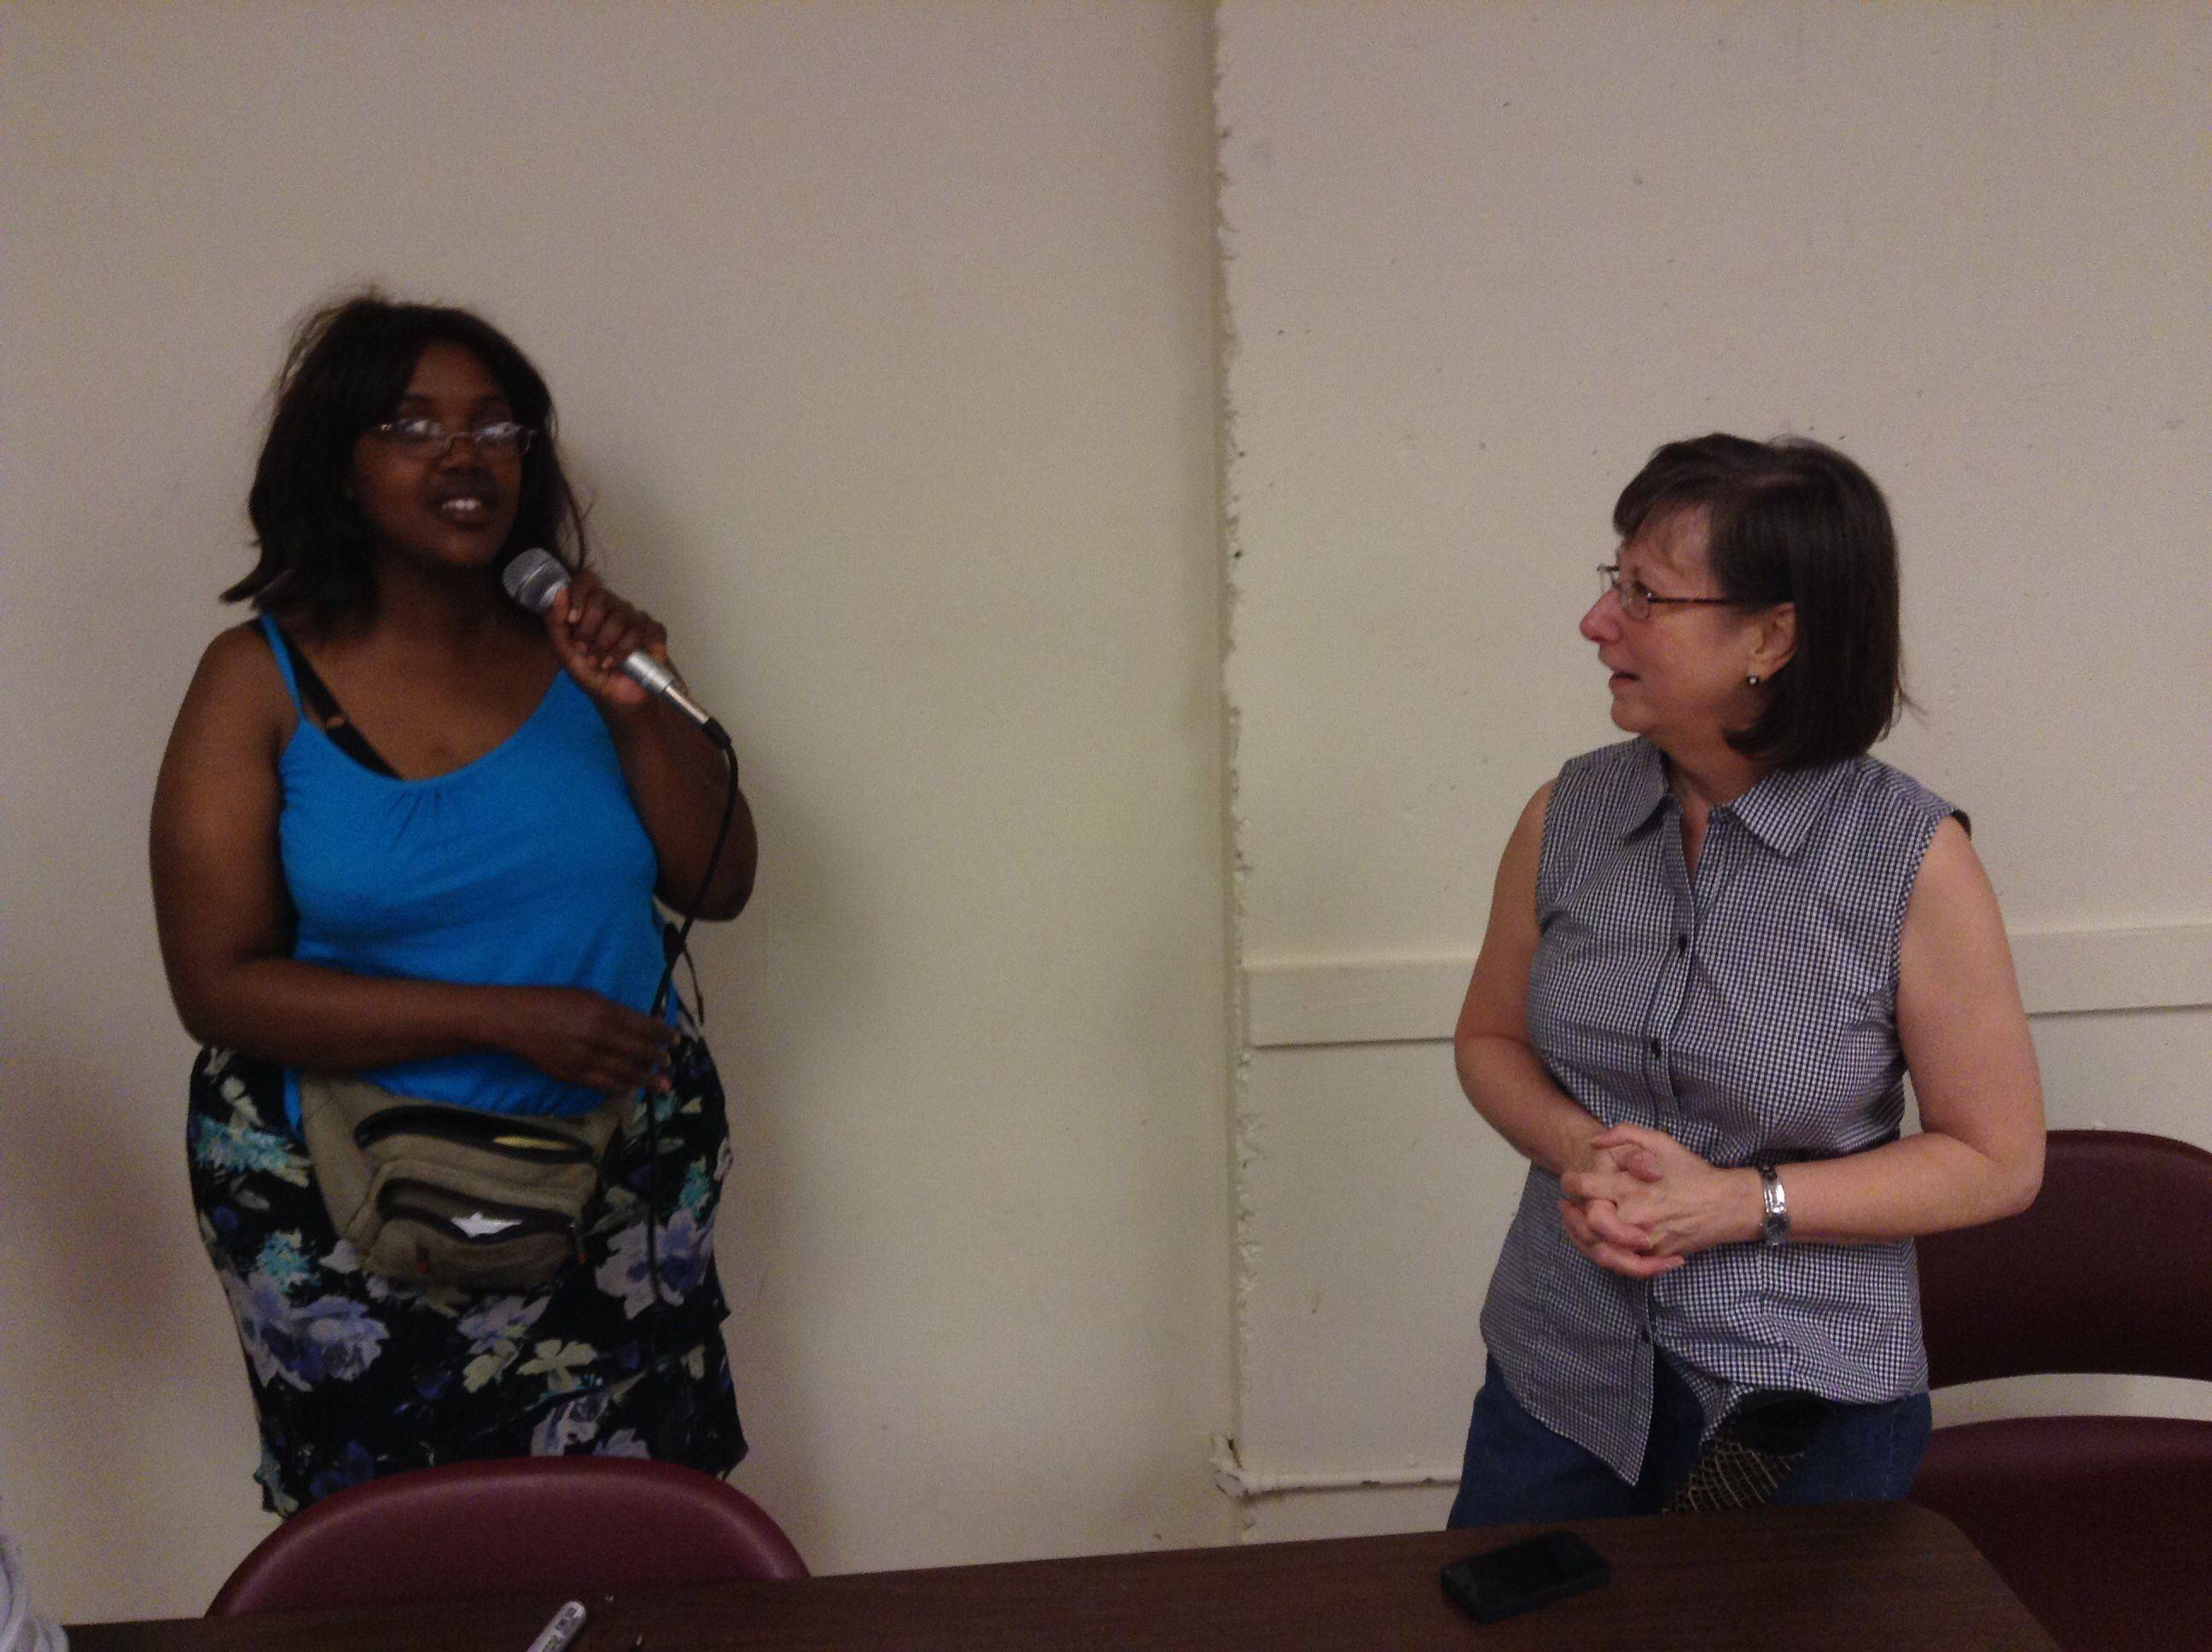 Dena Martinez, left, of Mundelein speaks with Laura Zickuhr, one of the directors of Emmaus House.